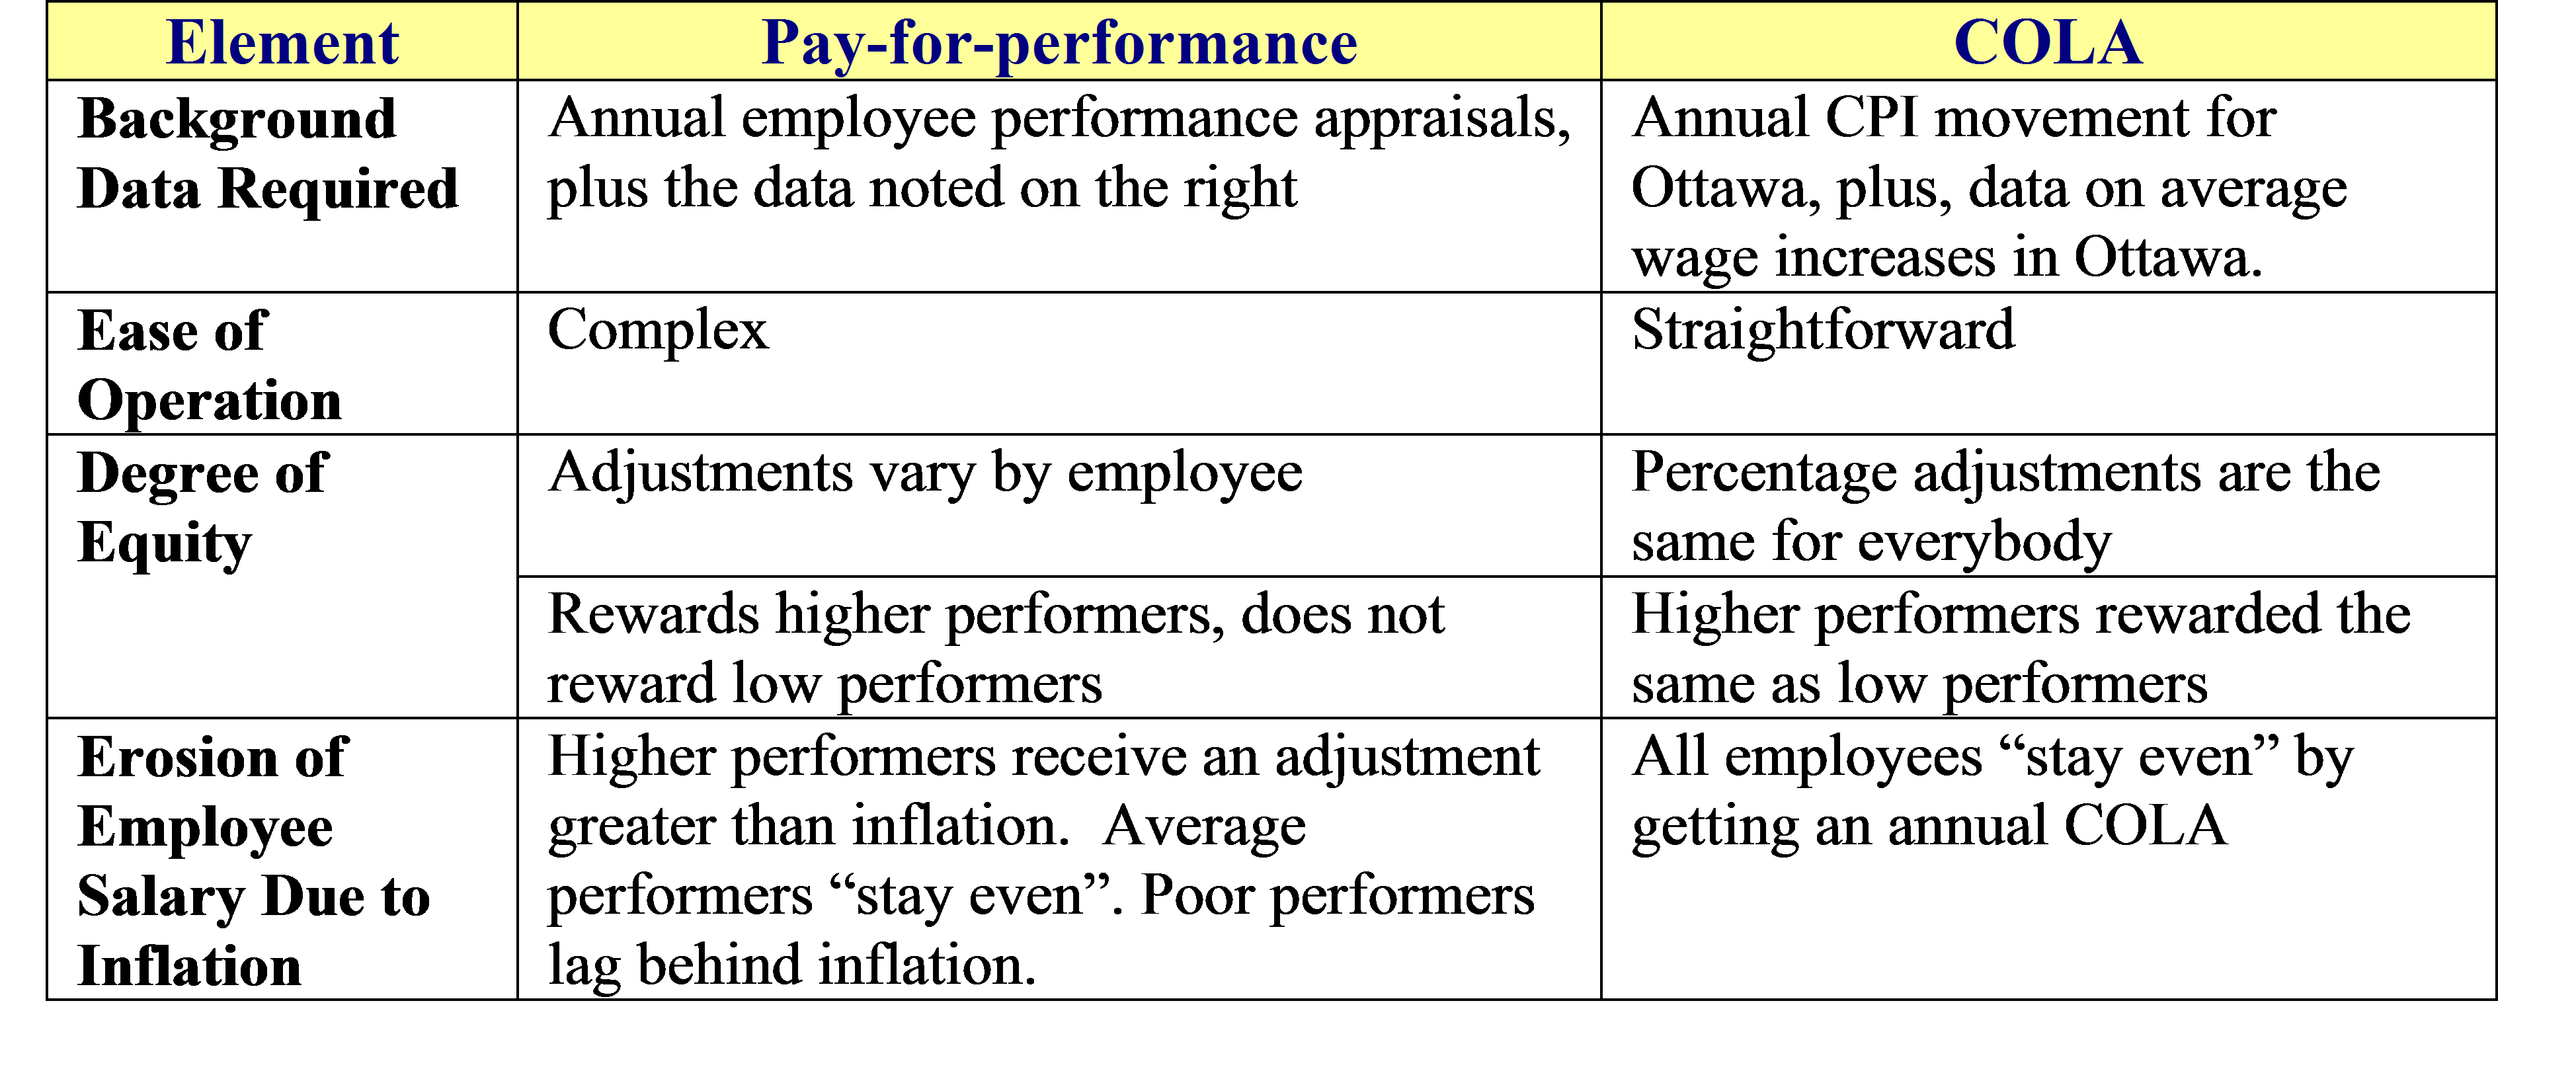 pay for performance COLA